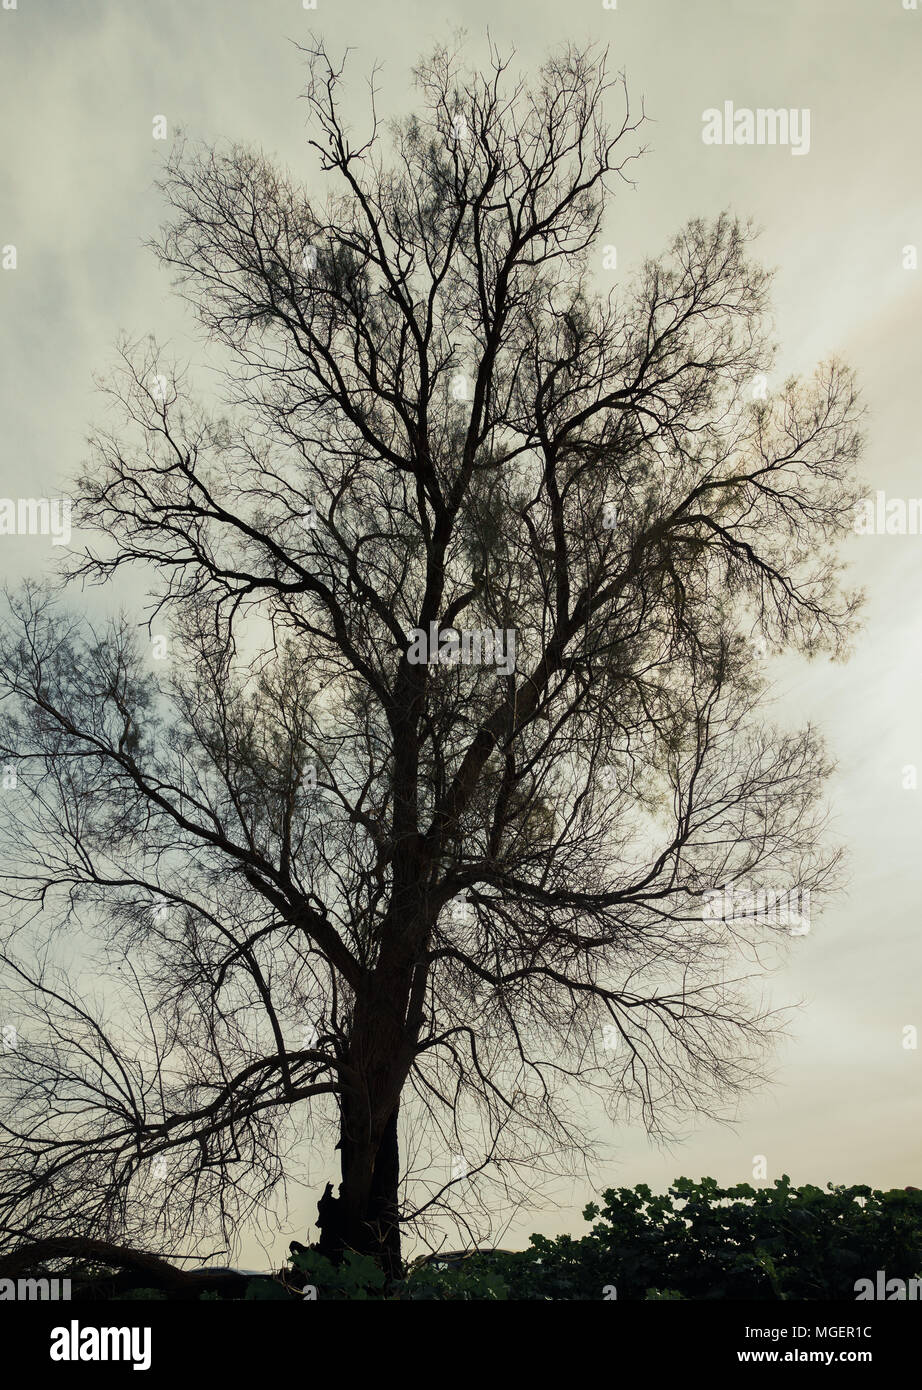 Silhouette of bare tree - Stock Image